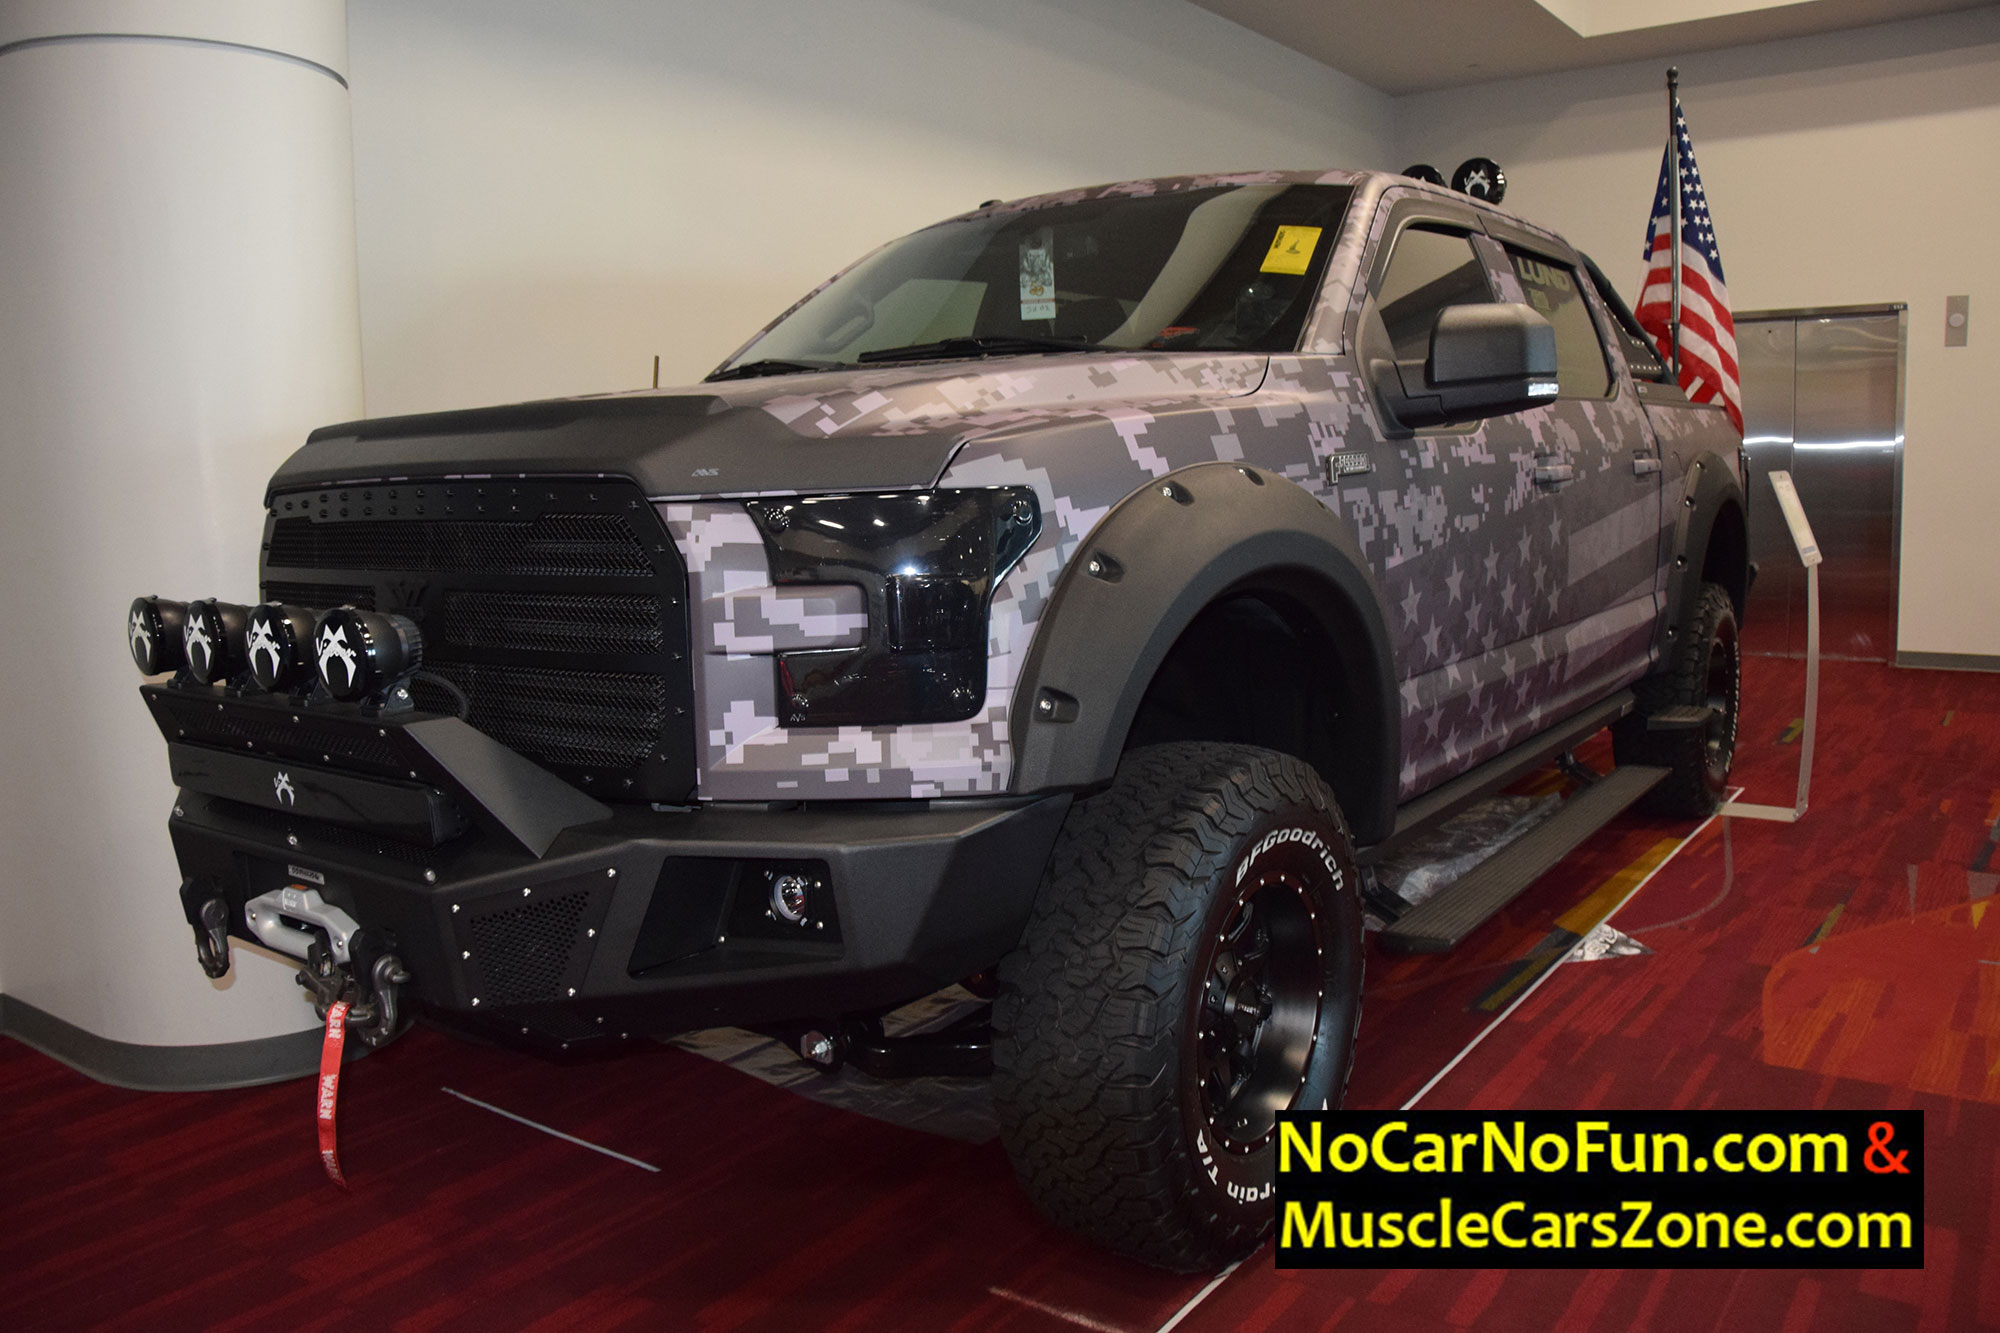 Willys Jeep Truck >> MUSCLECARSZONE OFFICIAL JUDGE @ 2016 SEMA SHOW LAS VEGAS ...